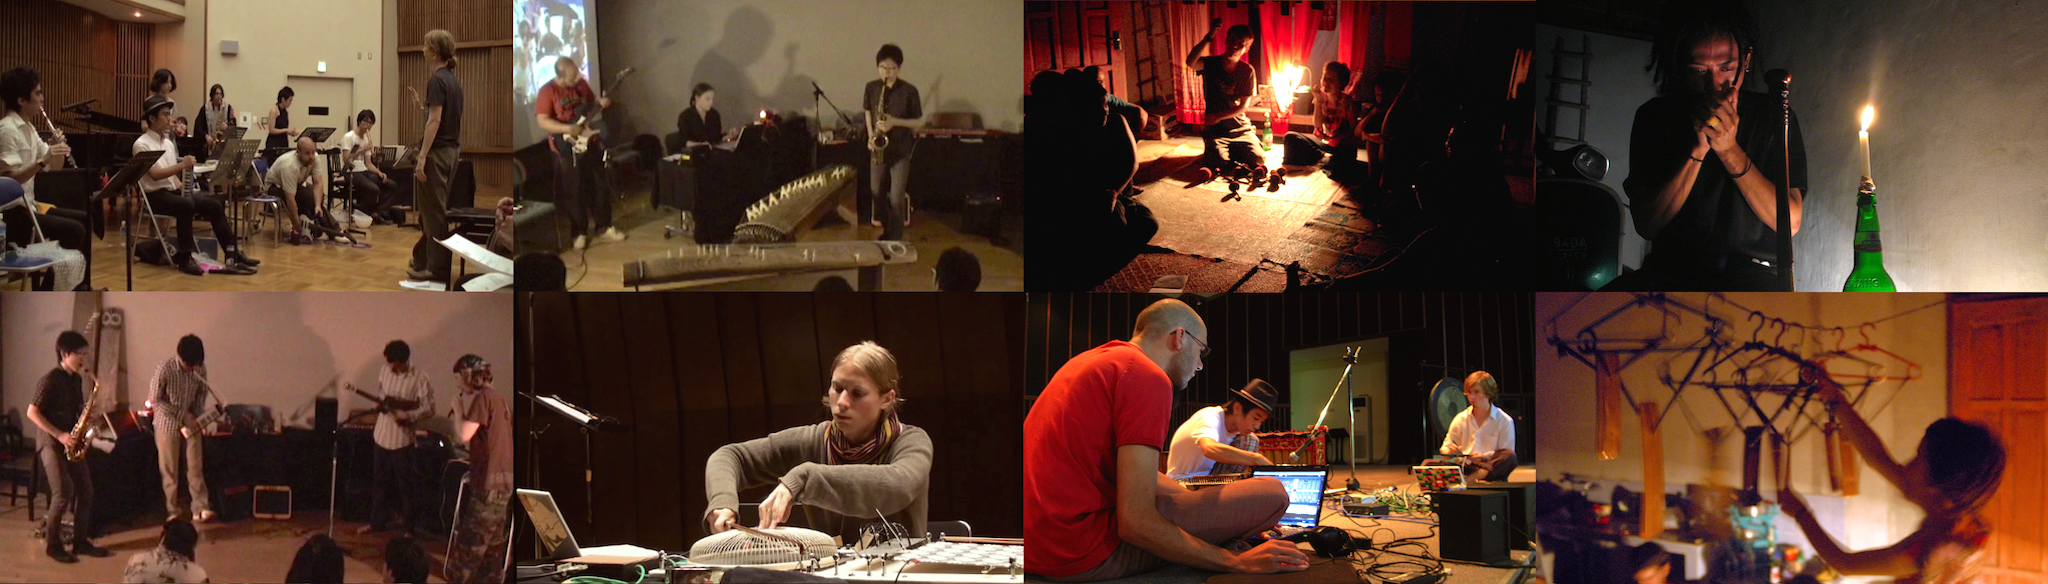 Improvisation performances and workshops: [left] Tokyo, 2009-2010 and [right] Yoygyakarta, 2008